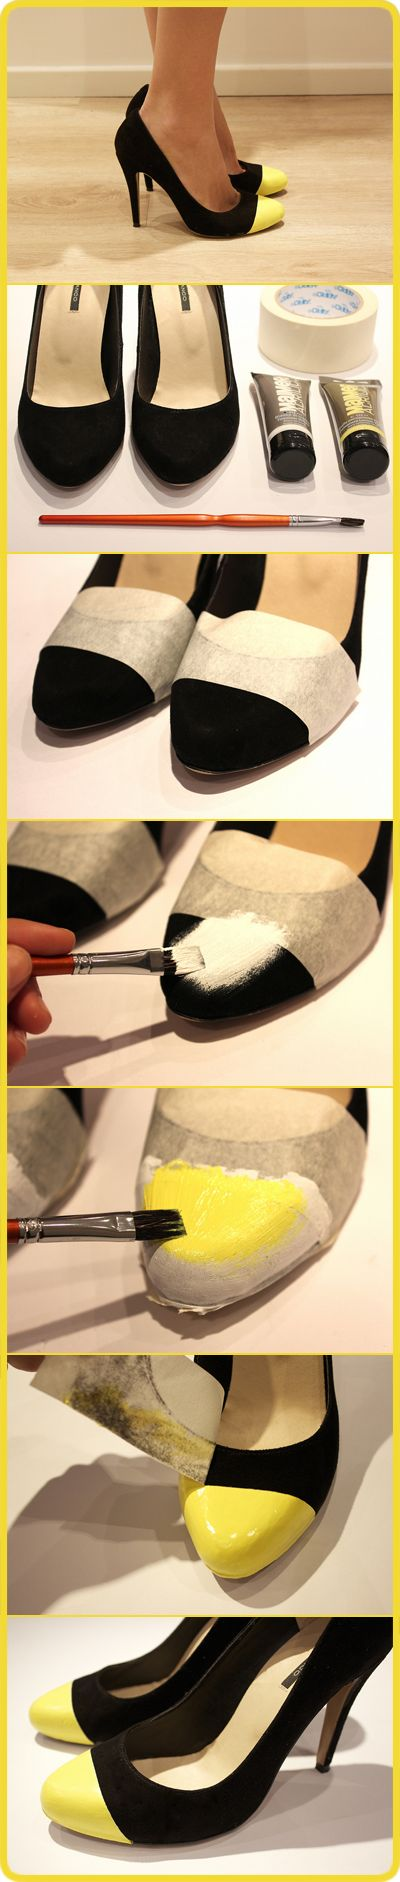 great idea to restyle old shoes & add a little color!!! @Jess Pearl Pearl Pearl Pearl Liu Randall